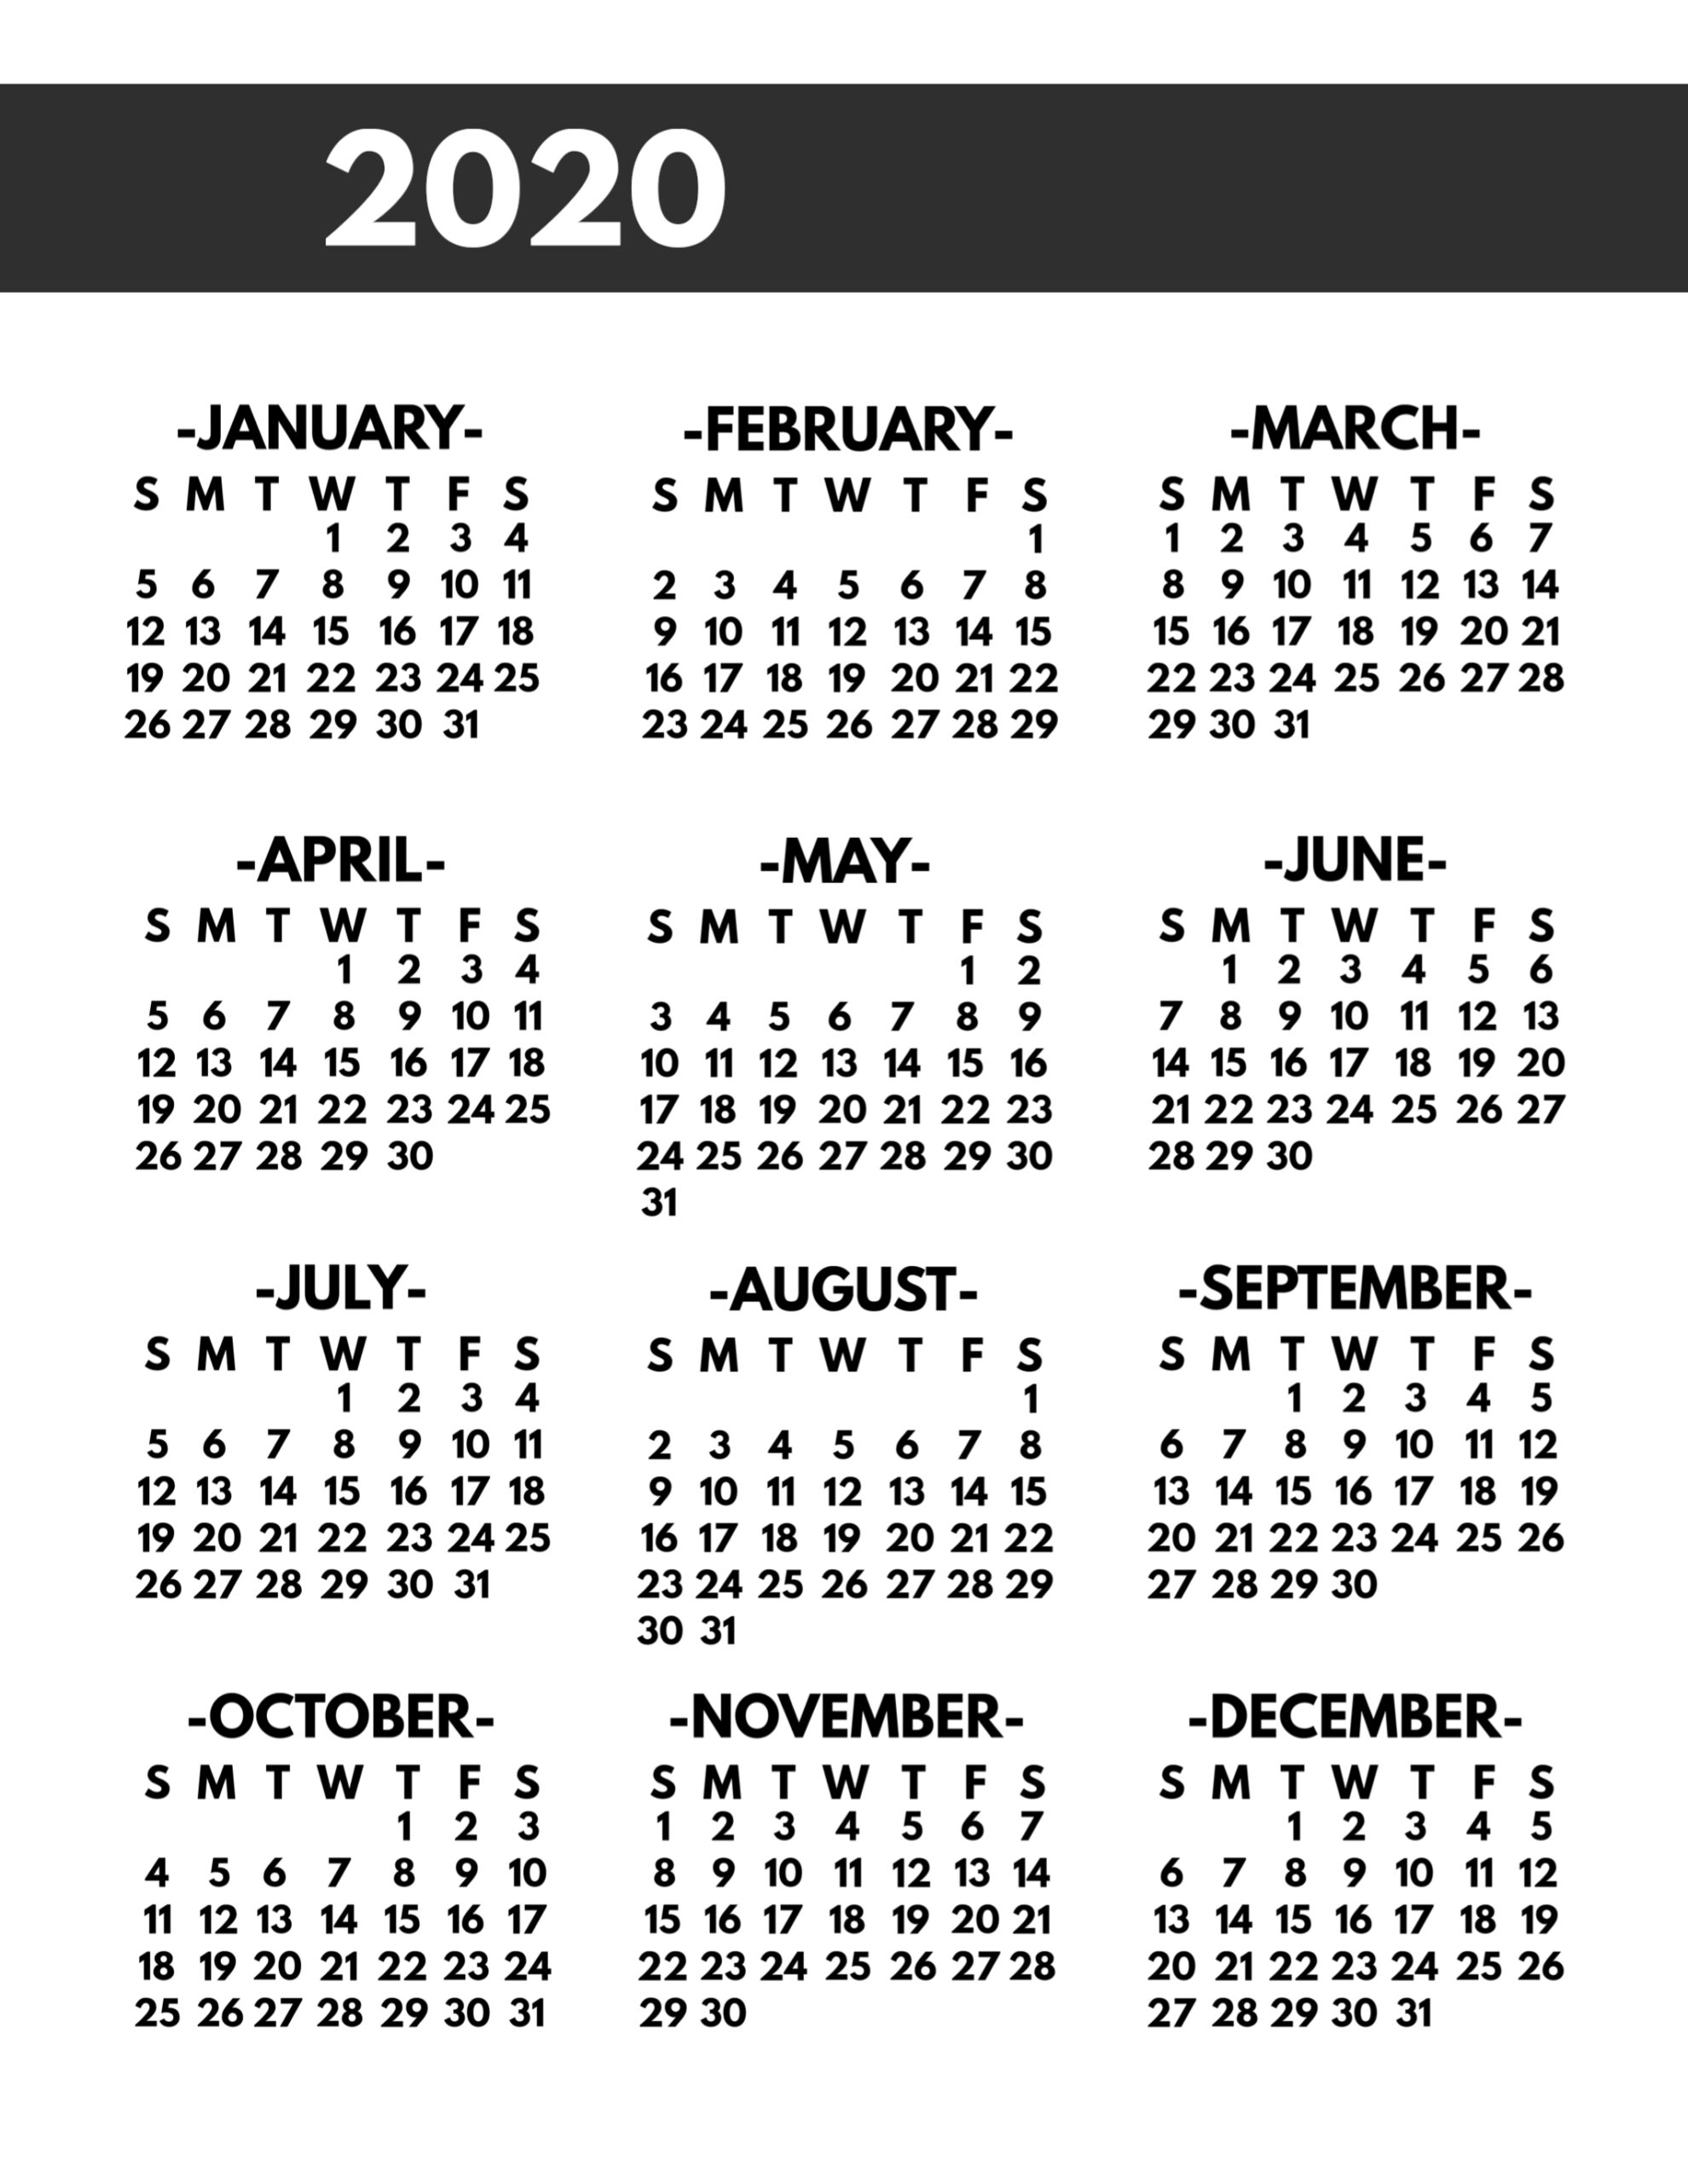 2020 Printable One Page Year At A Glance Calendar - Paper within 2020 At A Glance Calendar Printable